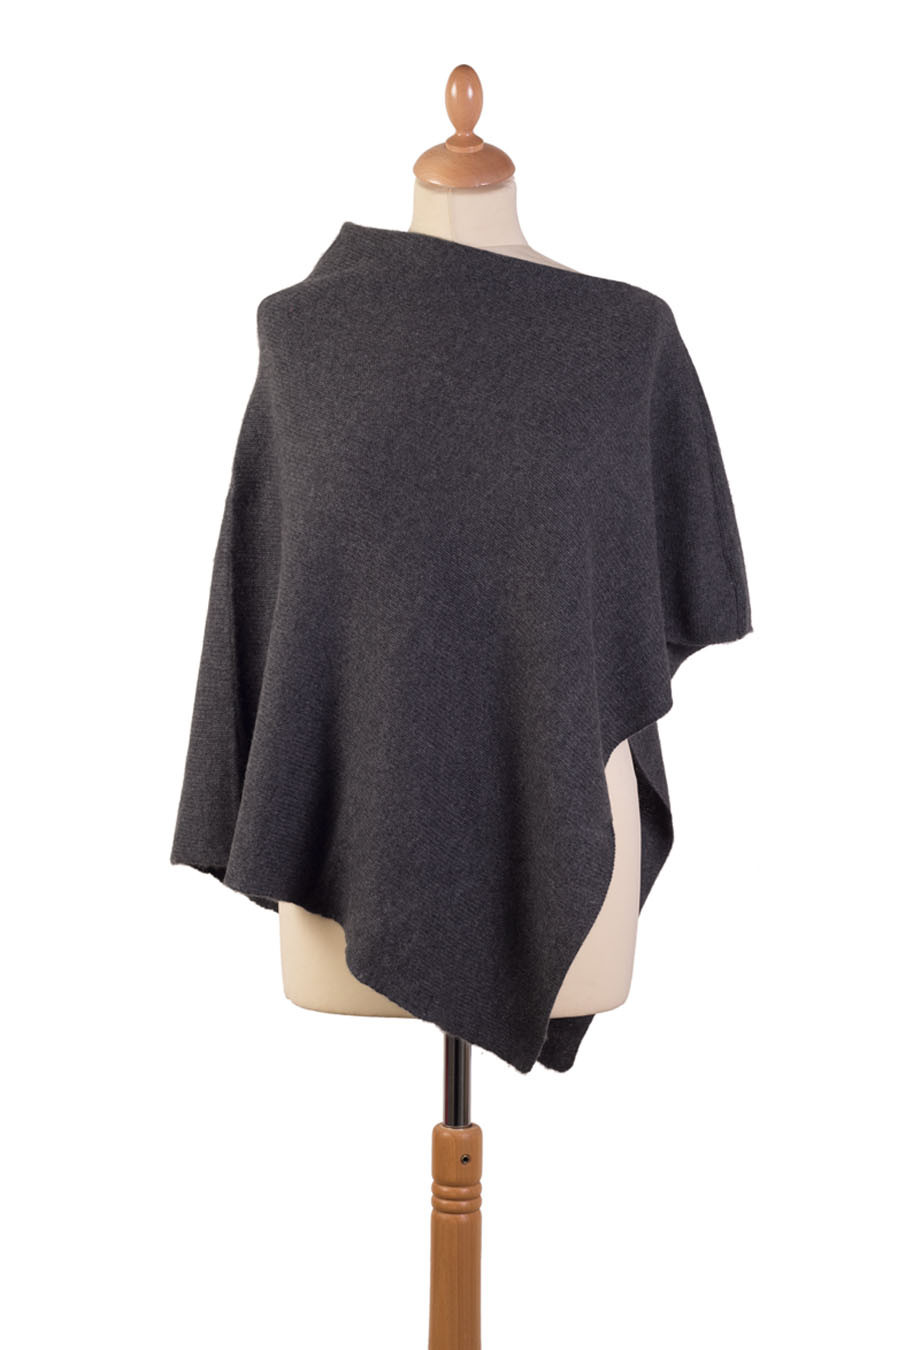 Poncho 4 fils cachemire SHAULA Gris anthracite